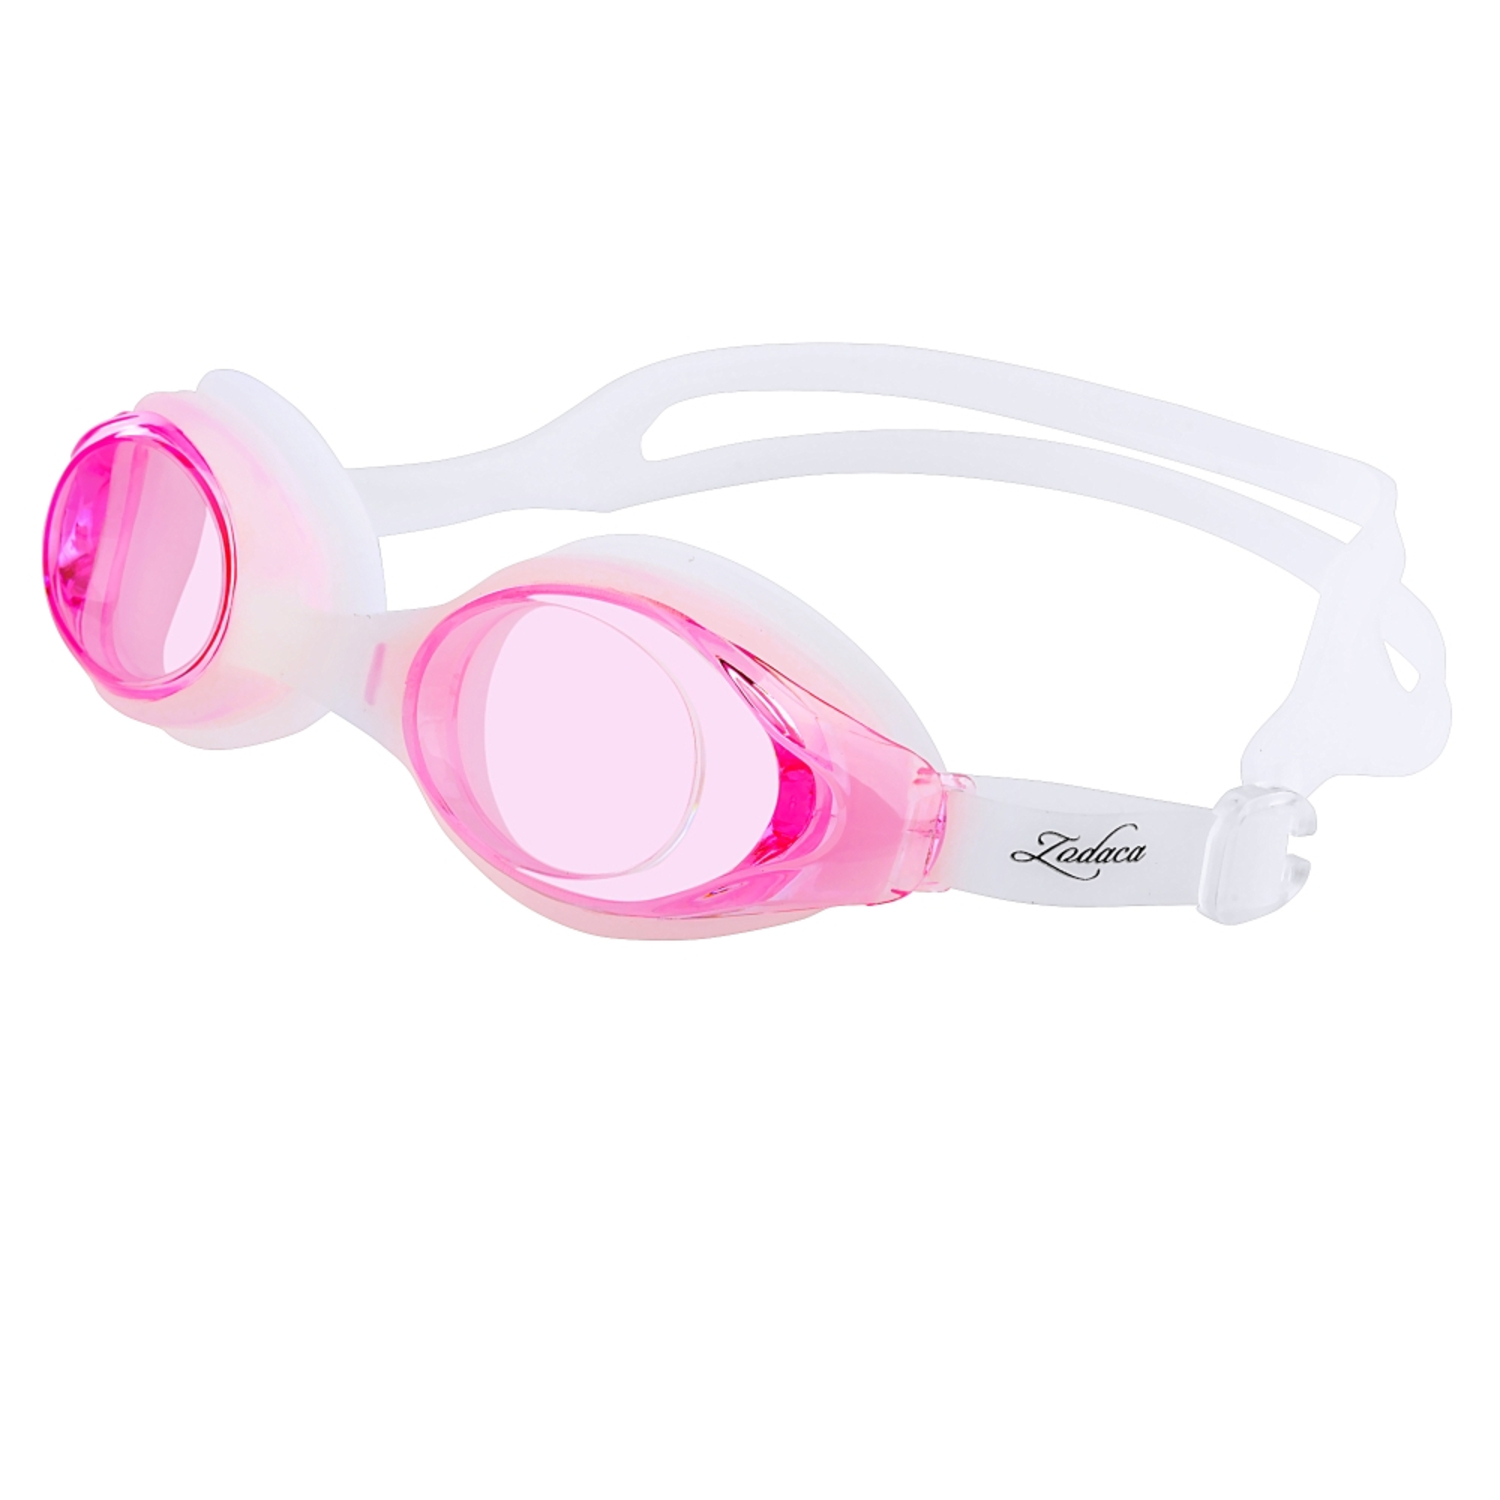 Zodaca Kids Child Adjustable Non-Fogging Anti UV Swim Swimming Goggles Glasses Pink (with Storage Case & Ear plugs ) by